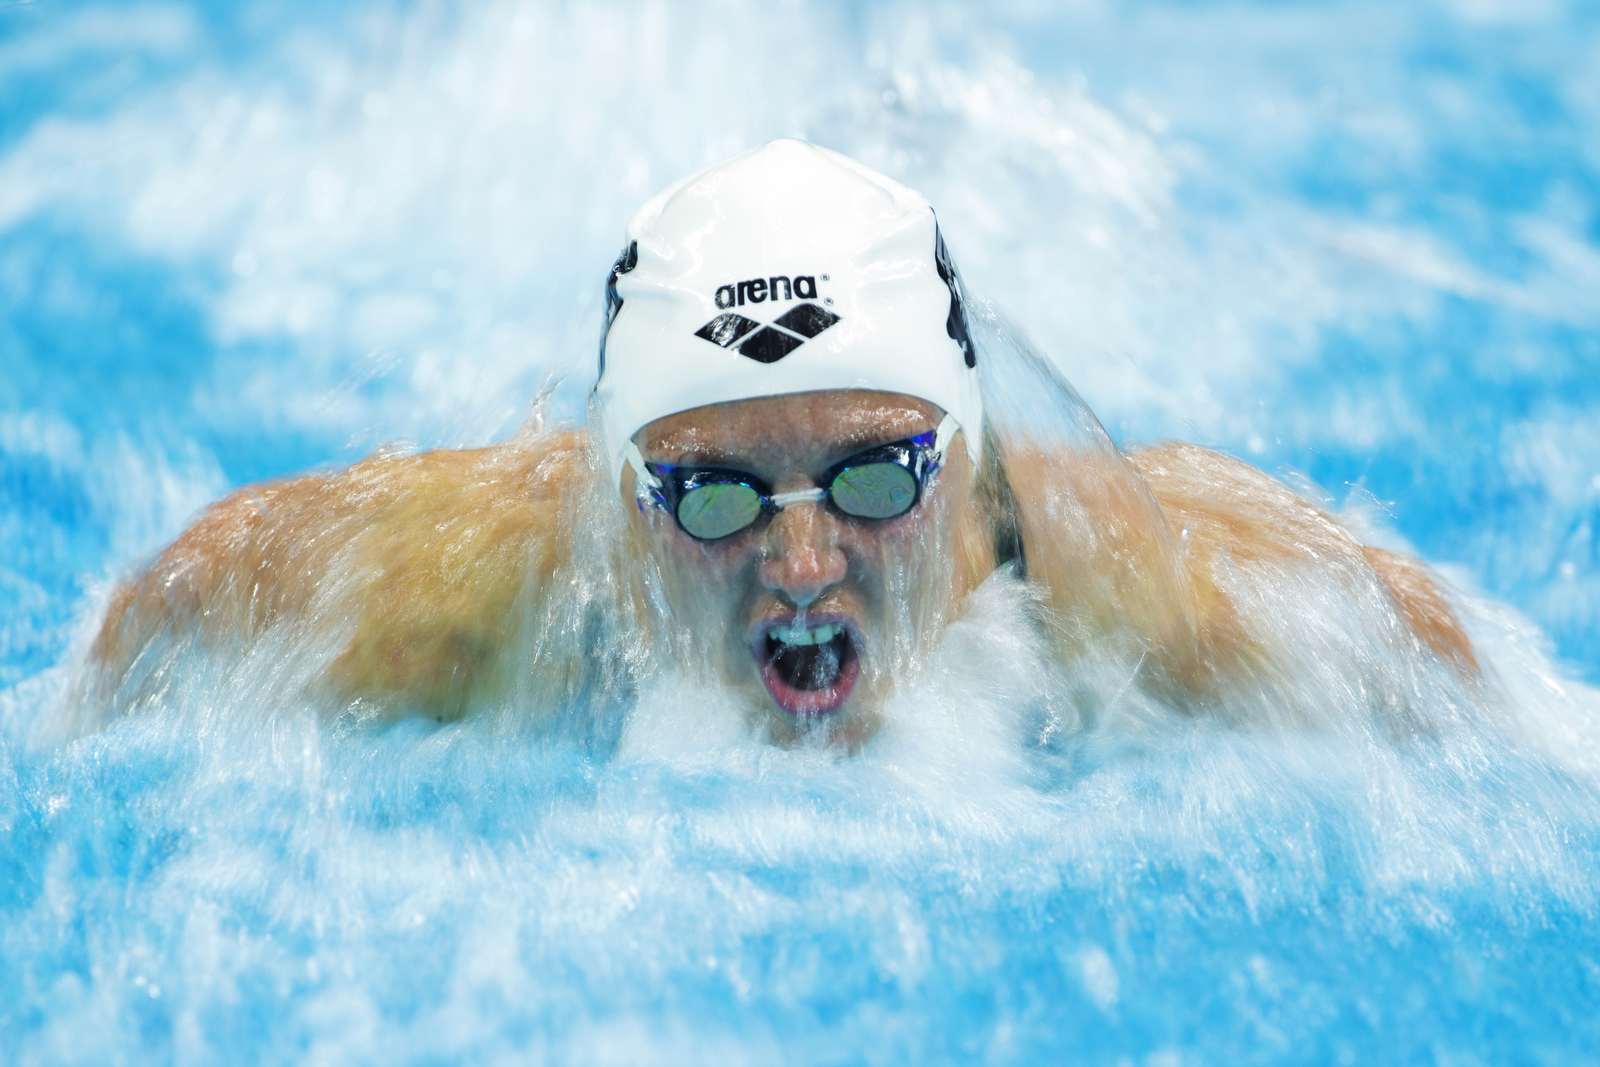 Katinka Hosszu of Hungary swims during the women's 200m butterfly final on day two of the FINA/airweave Swimming World Cup 2015 at OCBC Aquatic Centre on October 4, 2015 in Singapore.